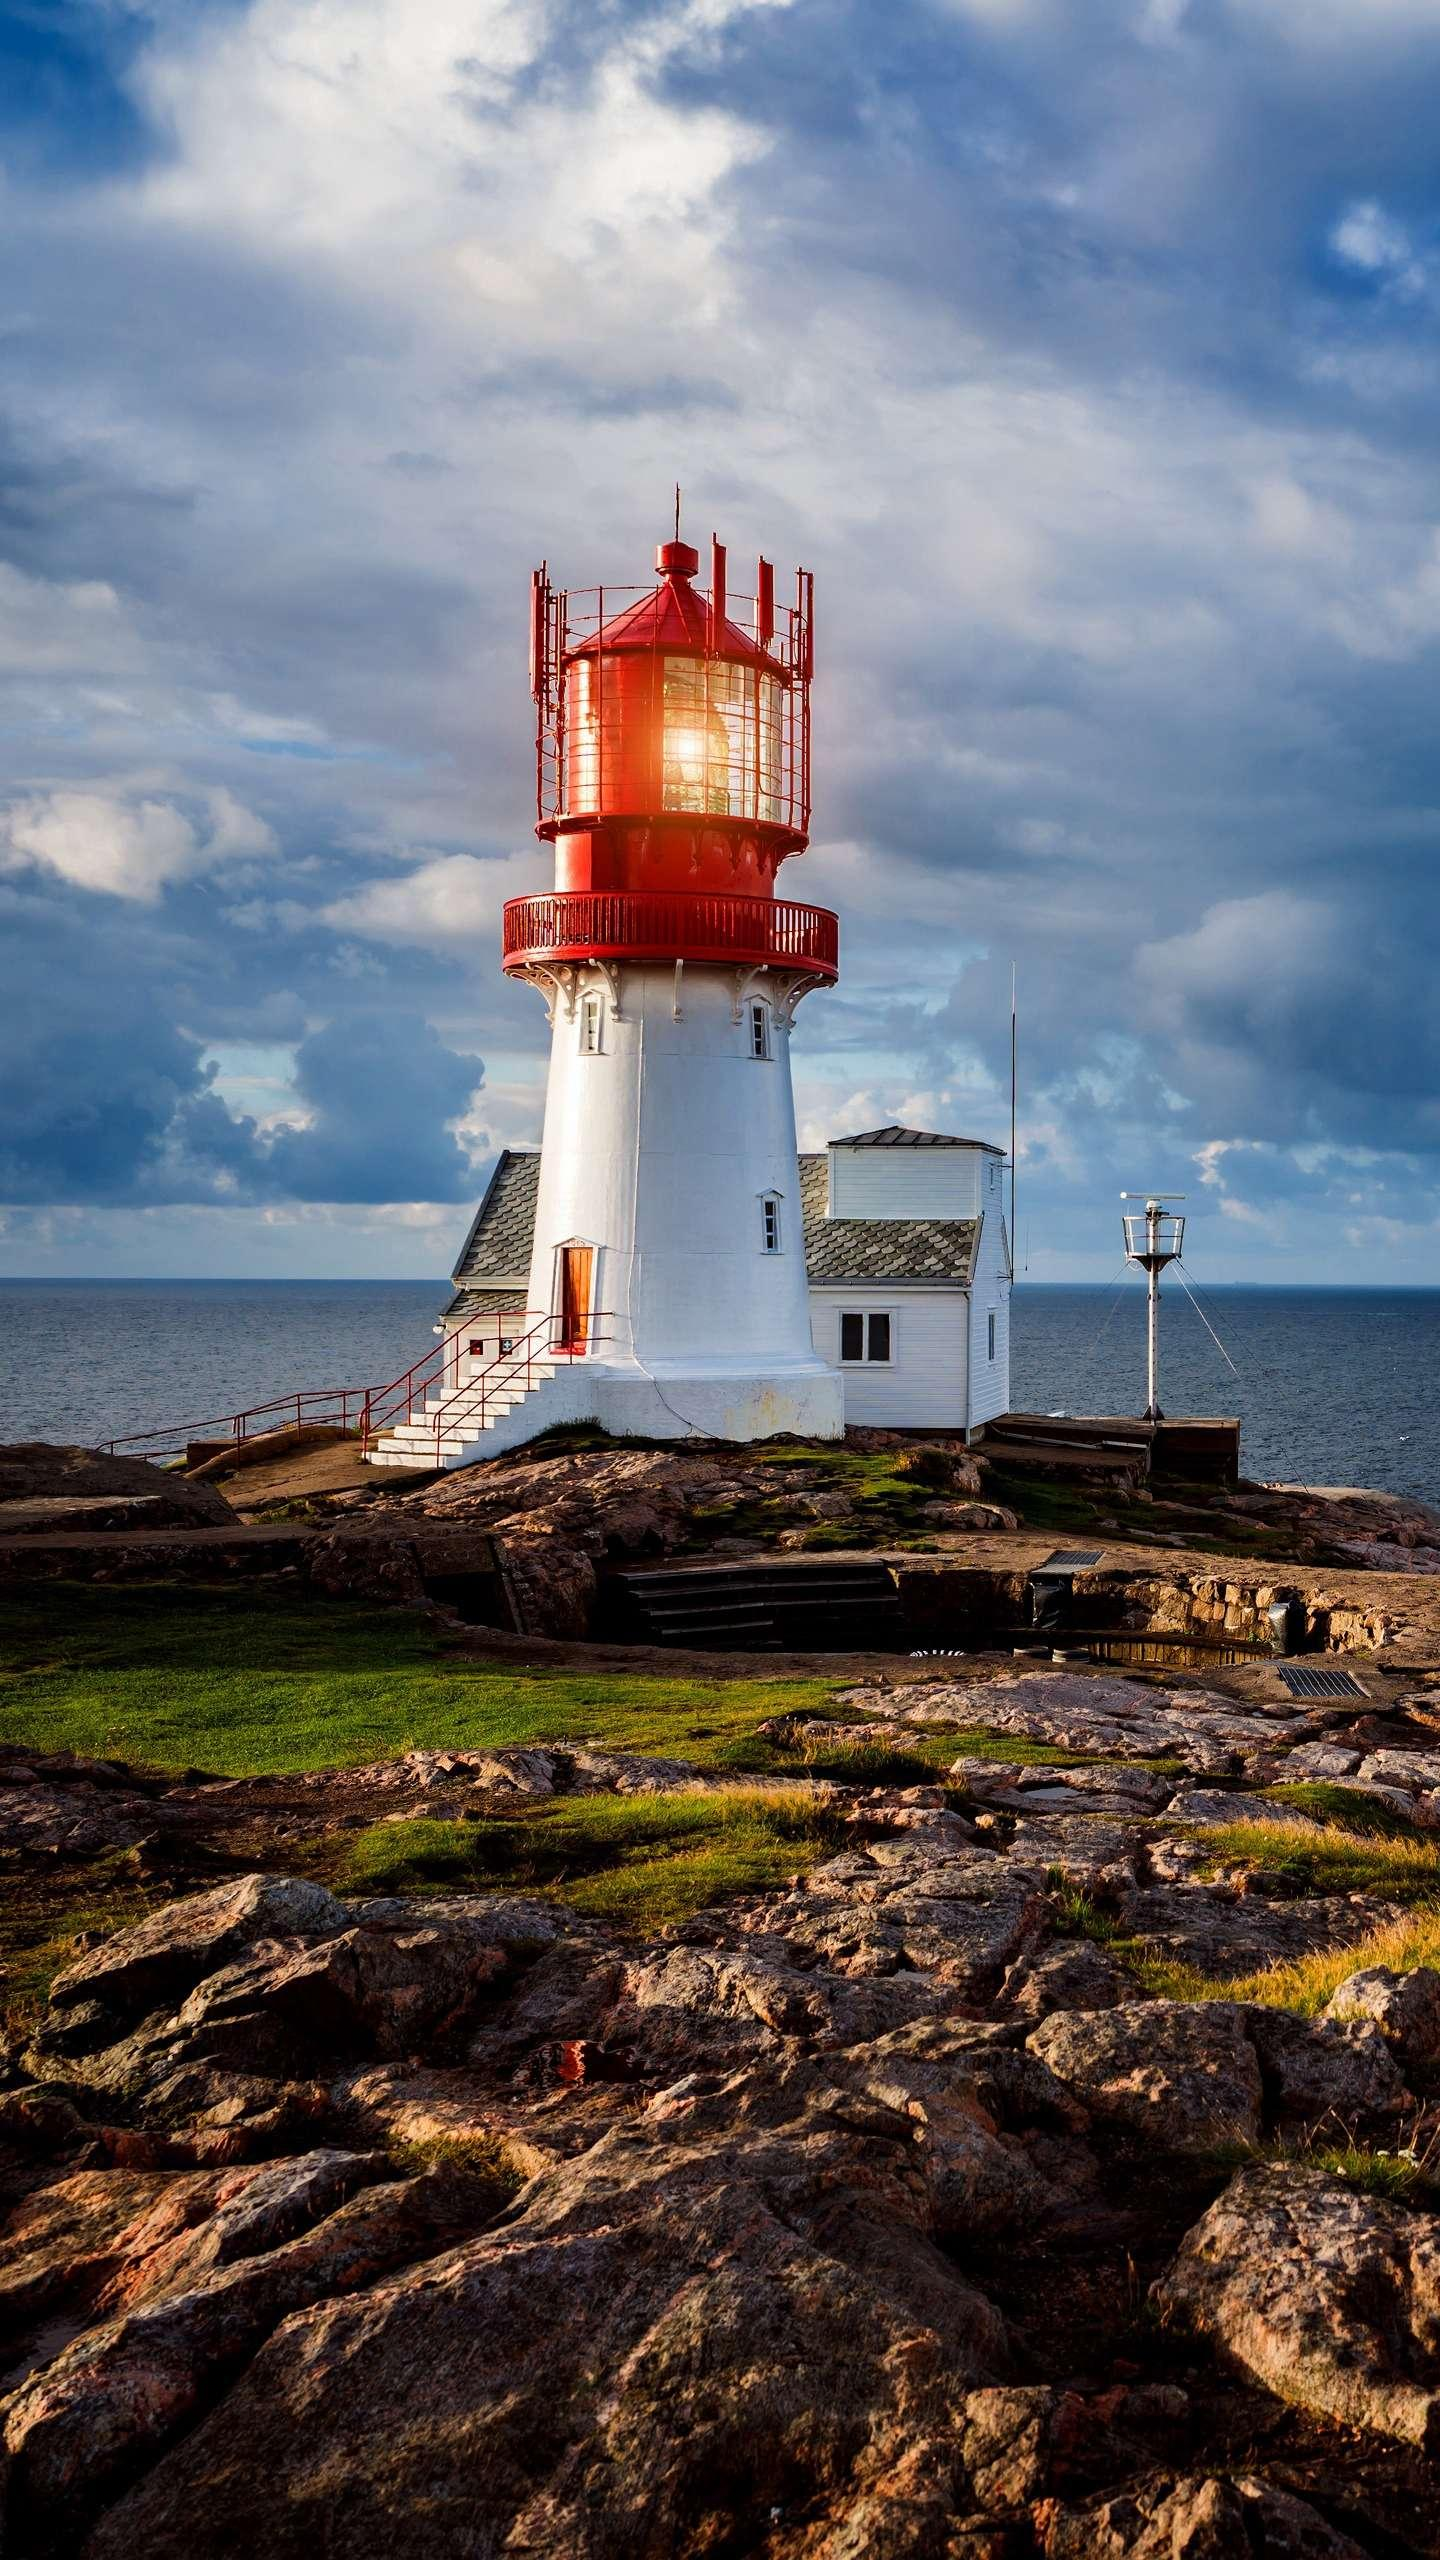 Beautiful lighthouse. The lighthouse guides the passing ships in the dark, no matter how cloudy or sunny, it has been silently witnessing the changes of the years.